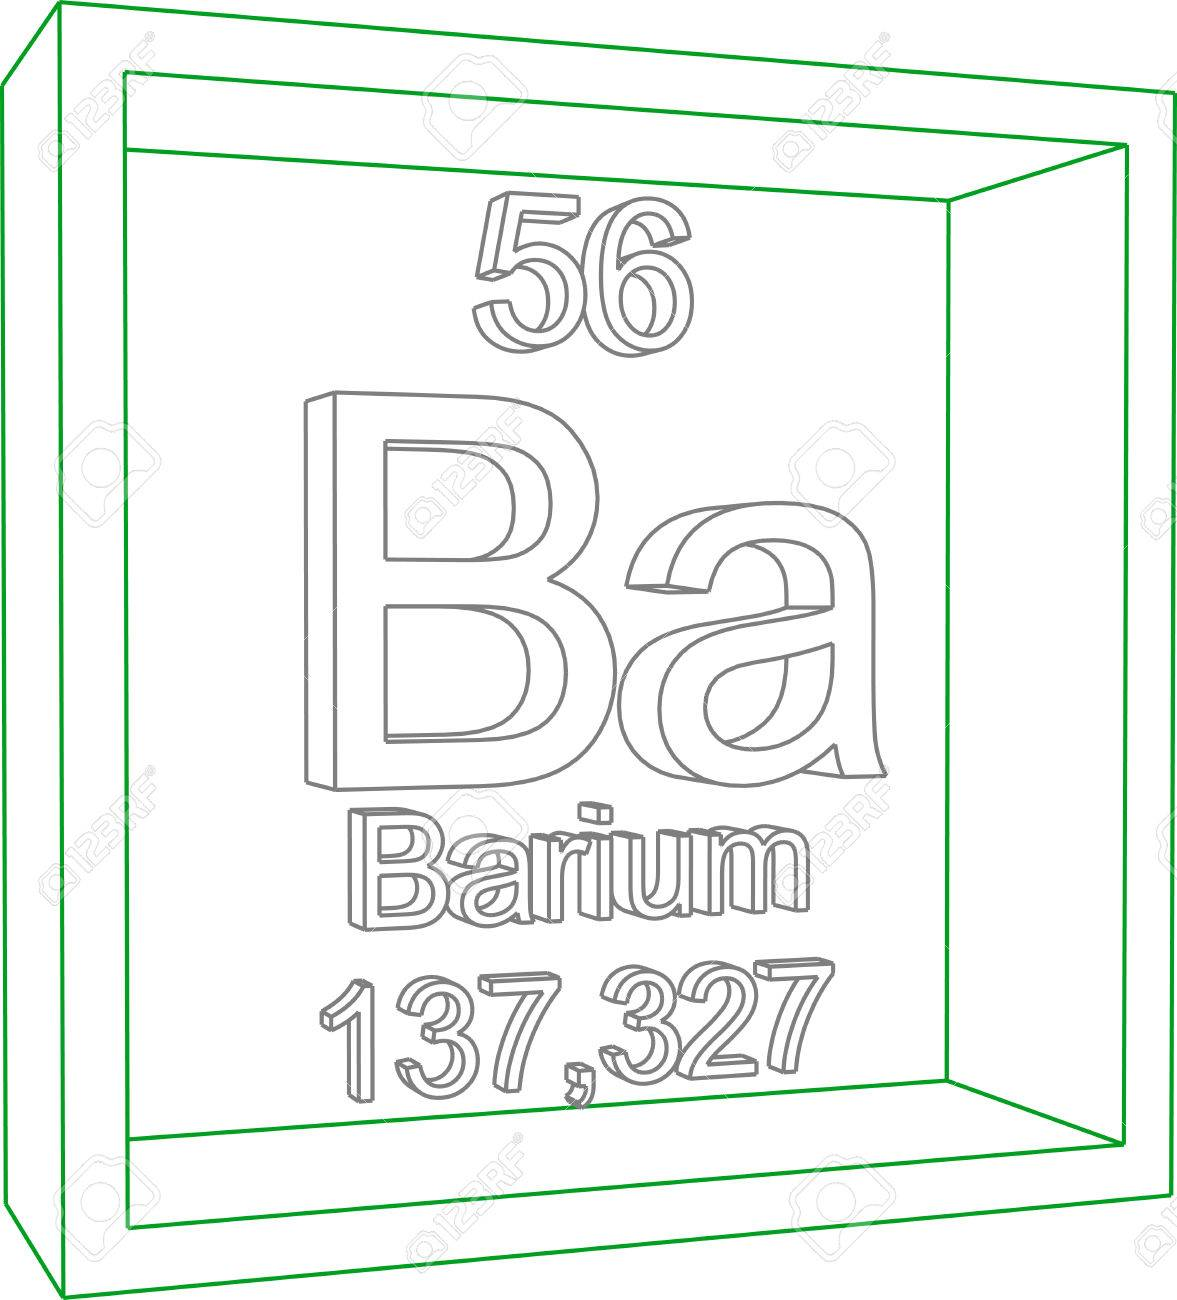 Periodic table barium gallery periodic table images periodic table element ba choice image periodic table images periodic table barium image collections periodic table gamestrikefo Image collections